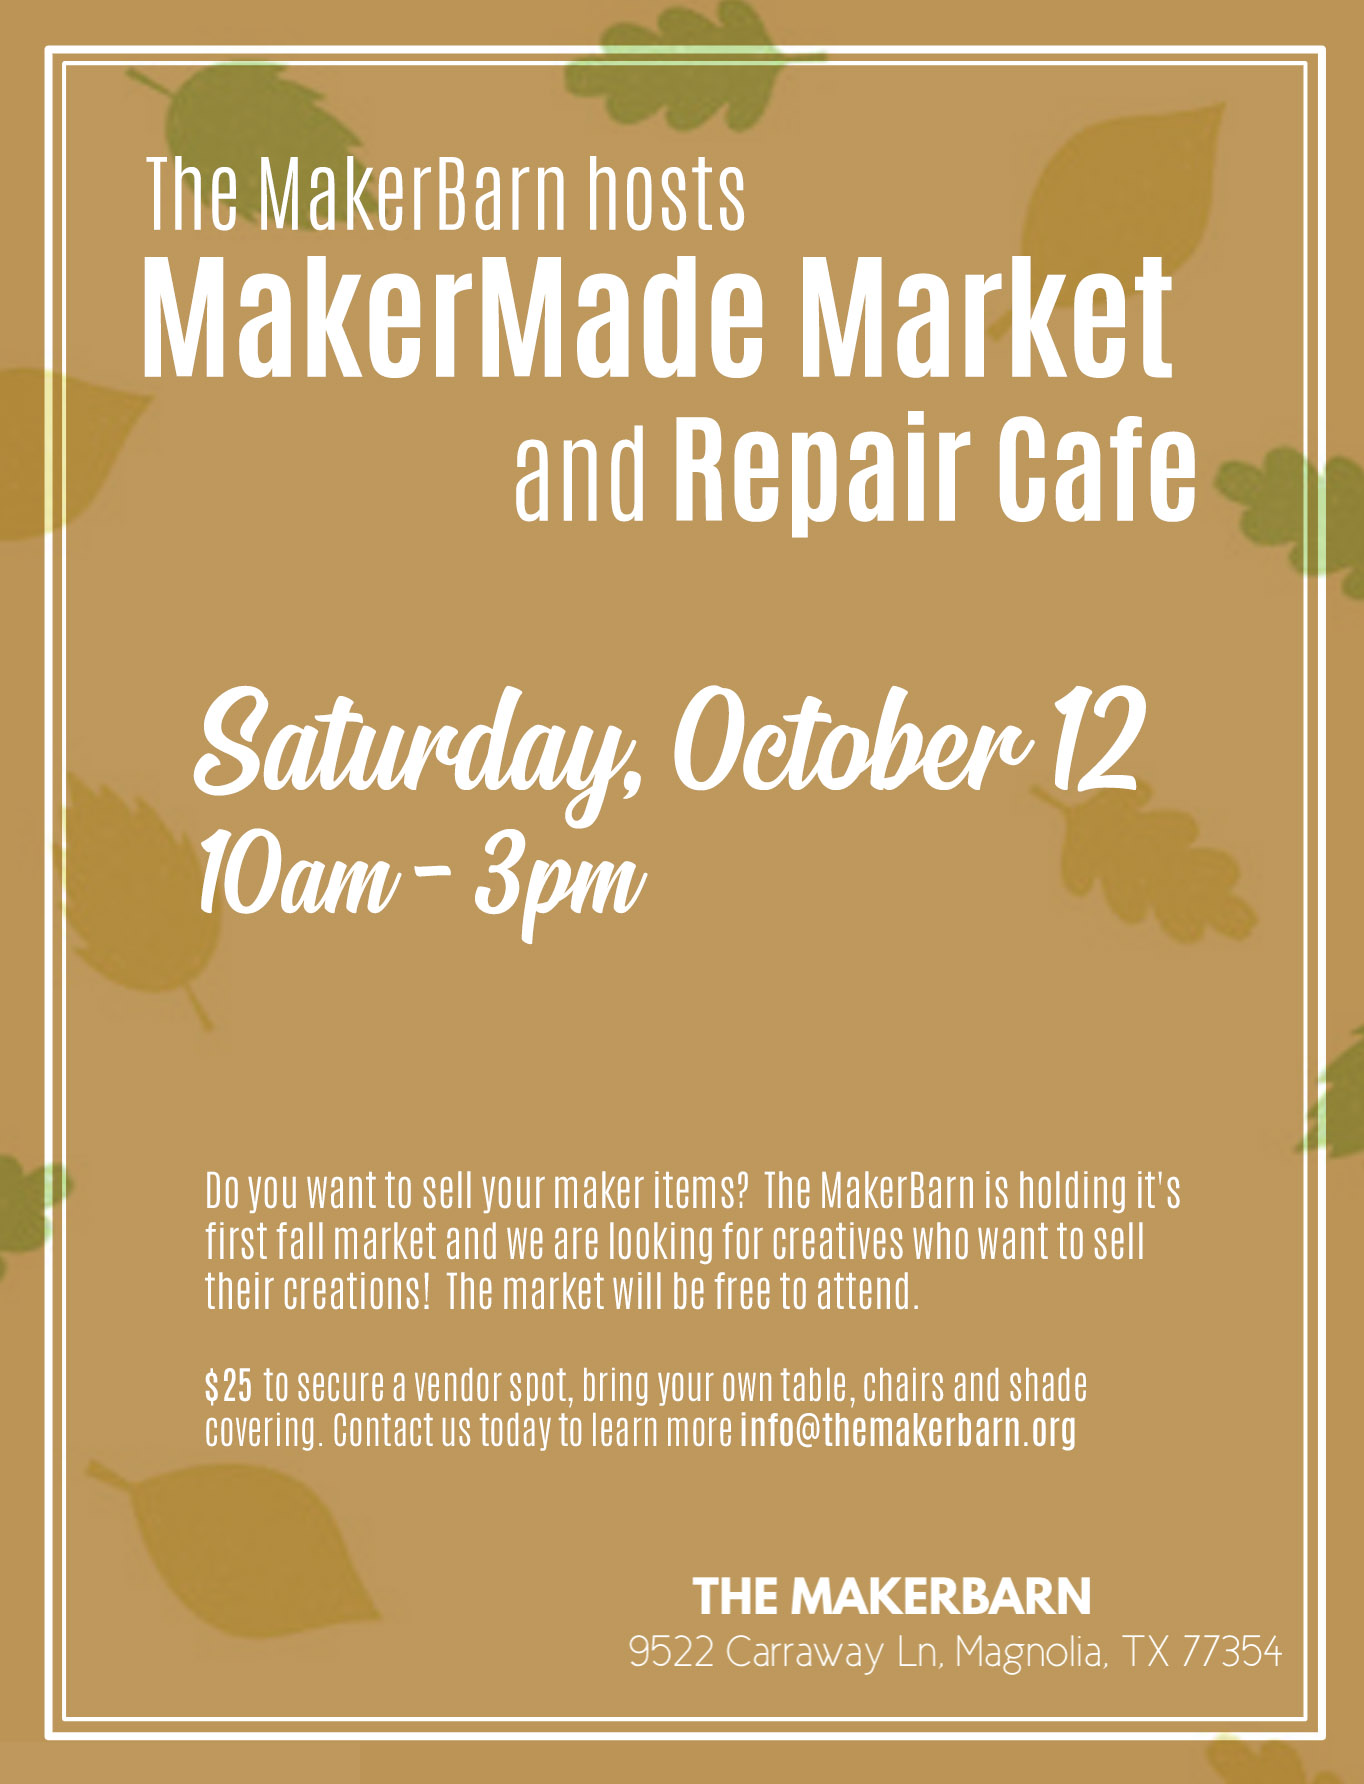 MakerMade Market and Repair Cafe